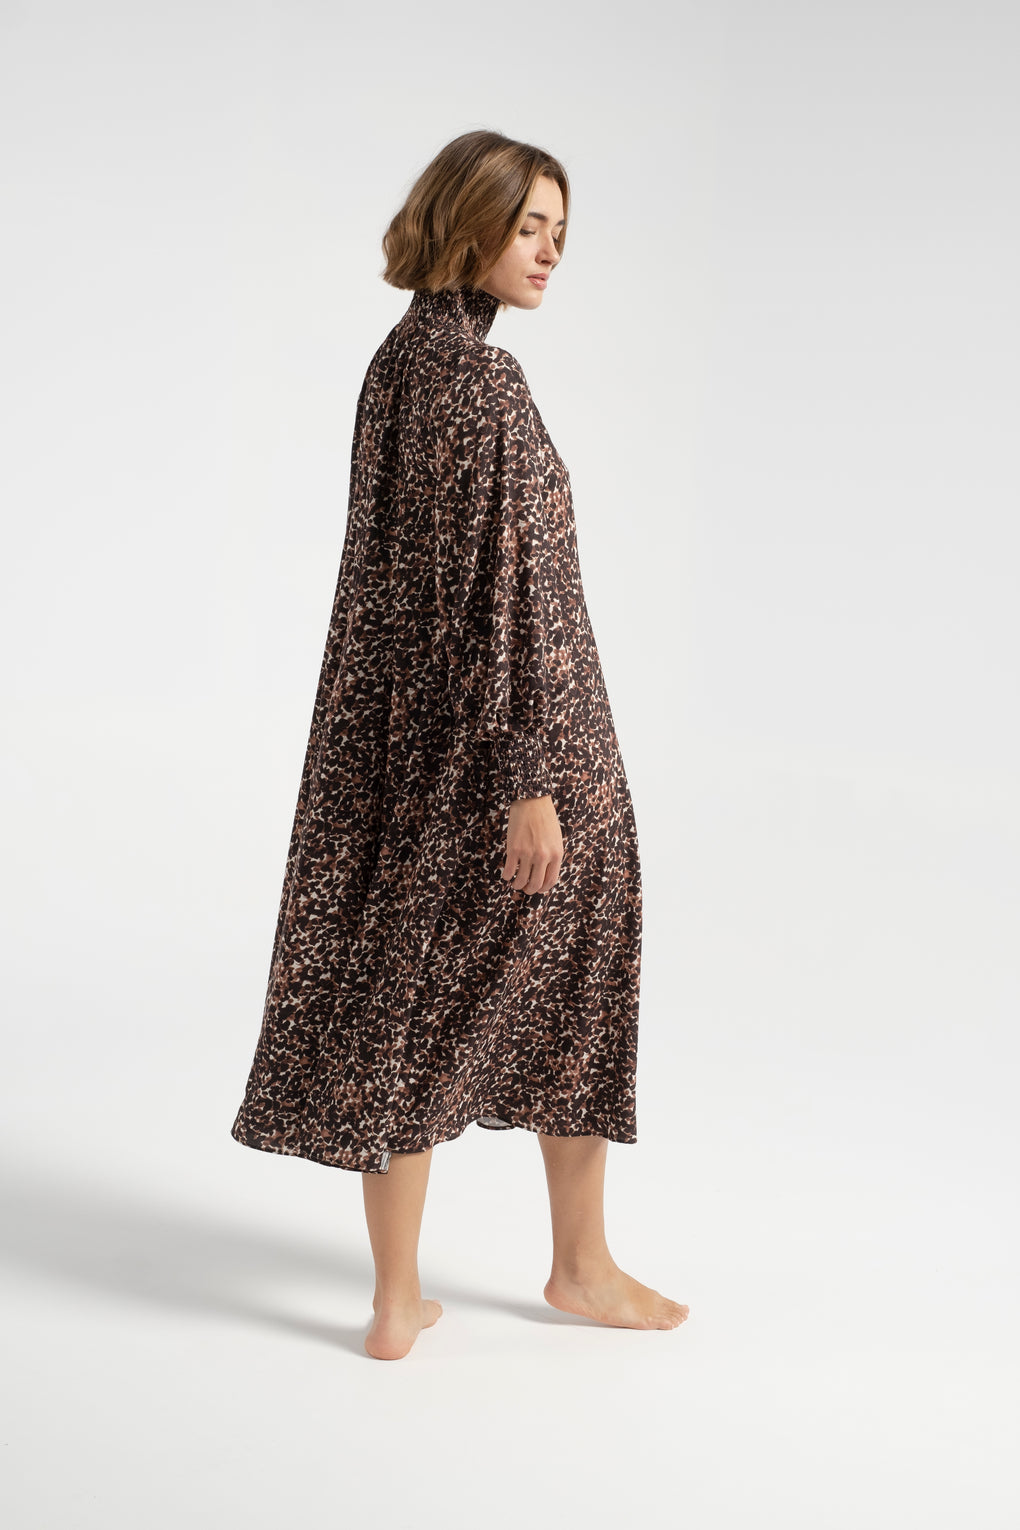 No.6-No. 6-No.6 Reid Dress-No.6 dress-long sleeve dress-animal print dress-Idun-St. Paul